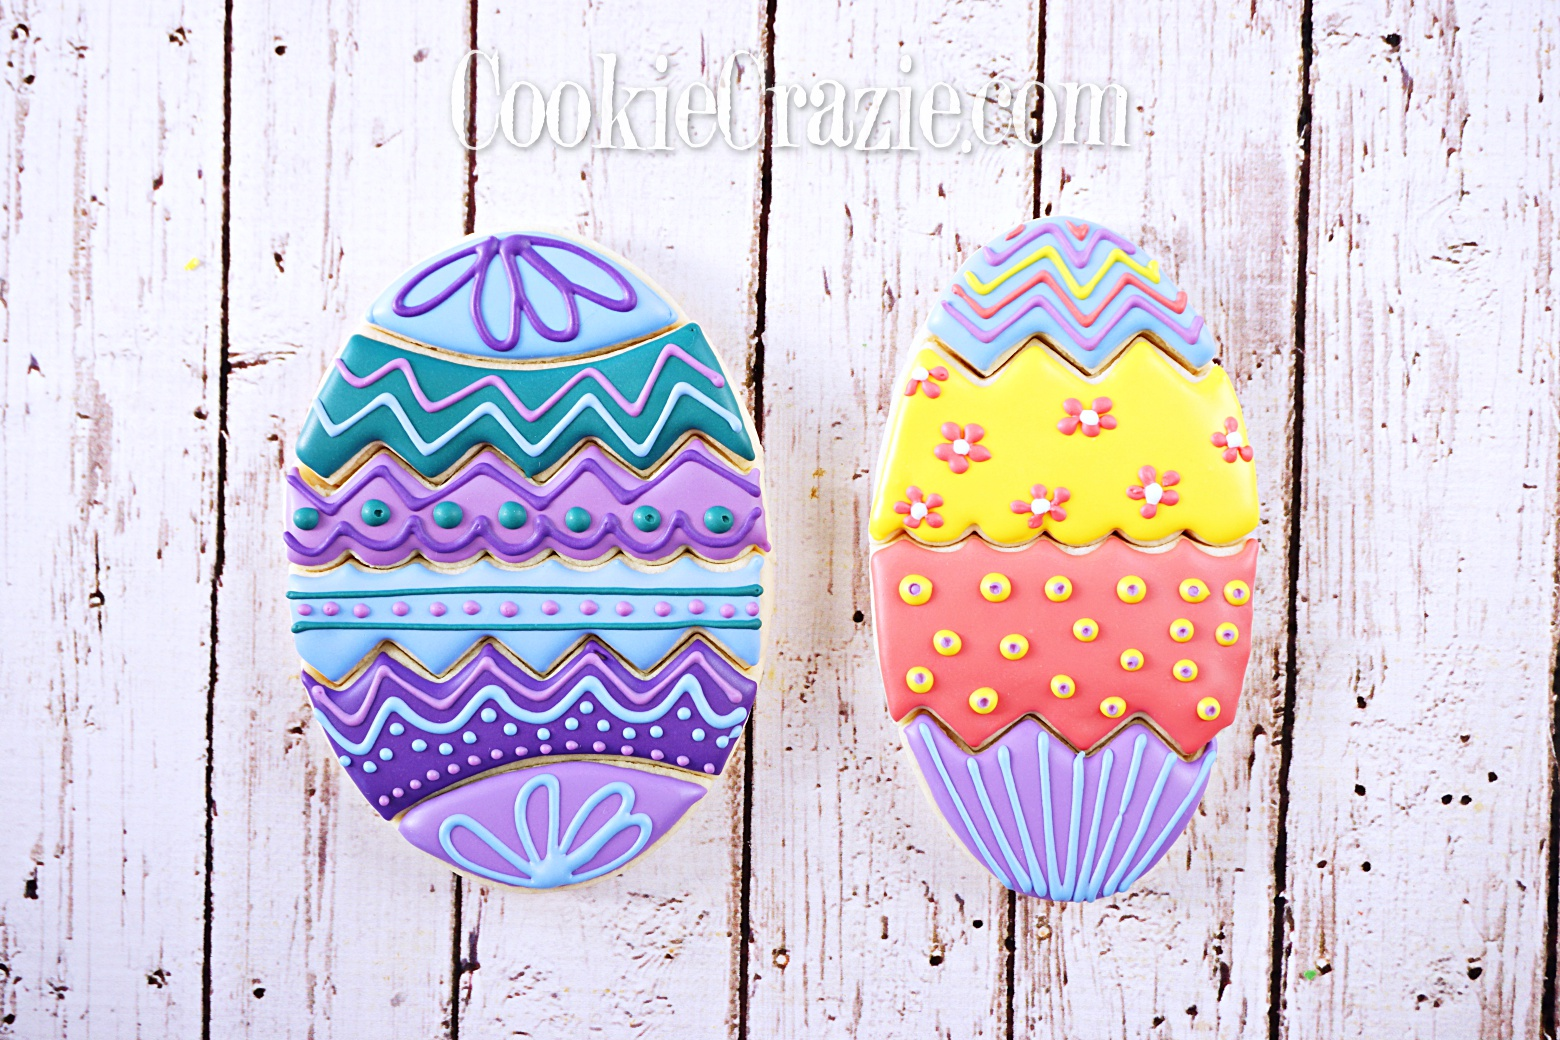 Easter Egg Puzzle Decorated Sugar Cookie YouTube video  HERE